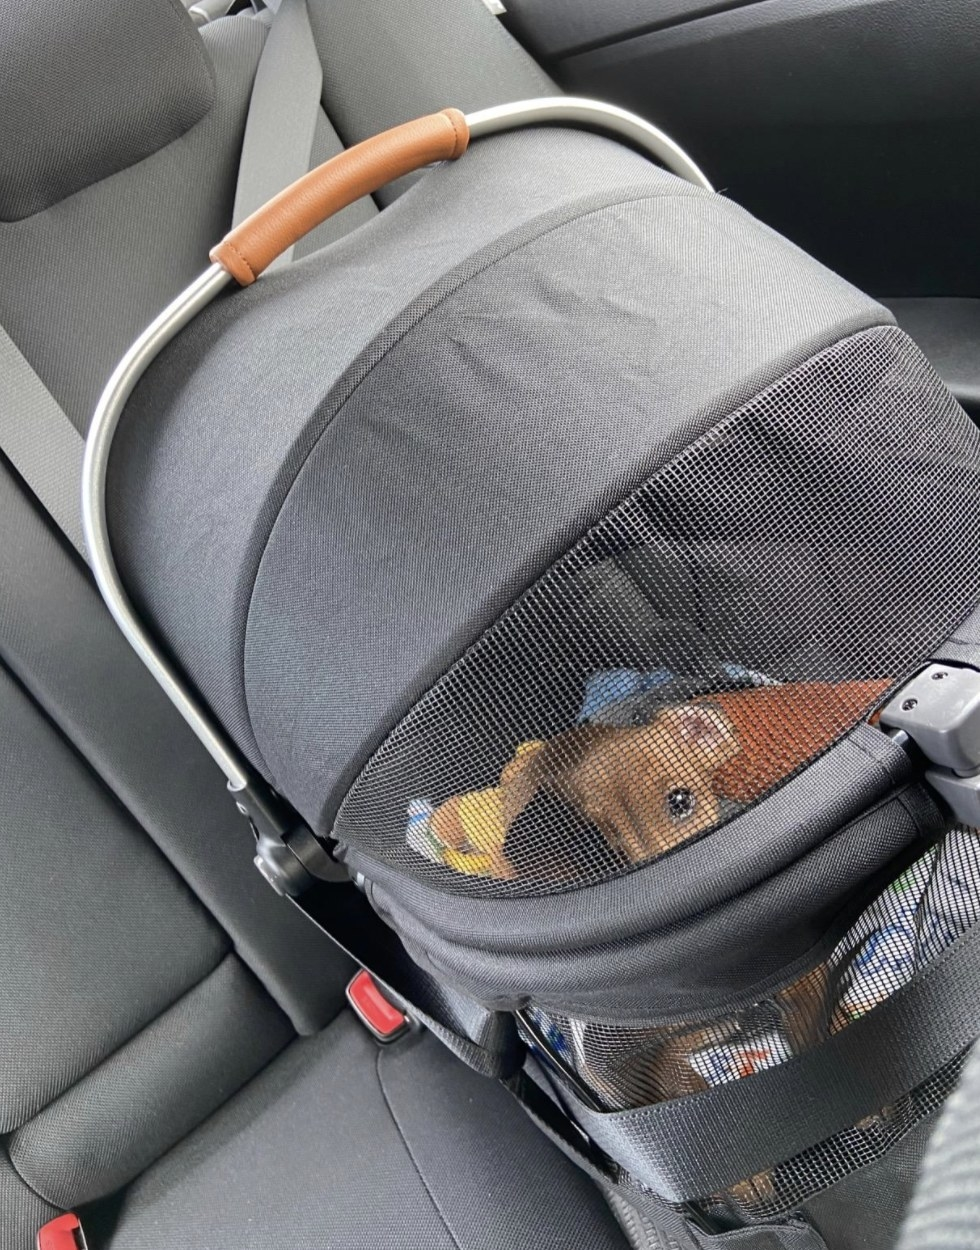 A dachshund sits inside a pet car carrier buckled into the backseat of a car